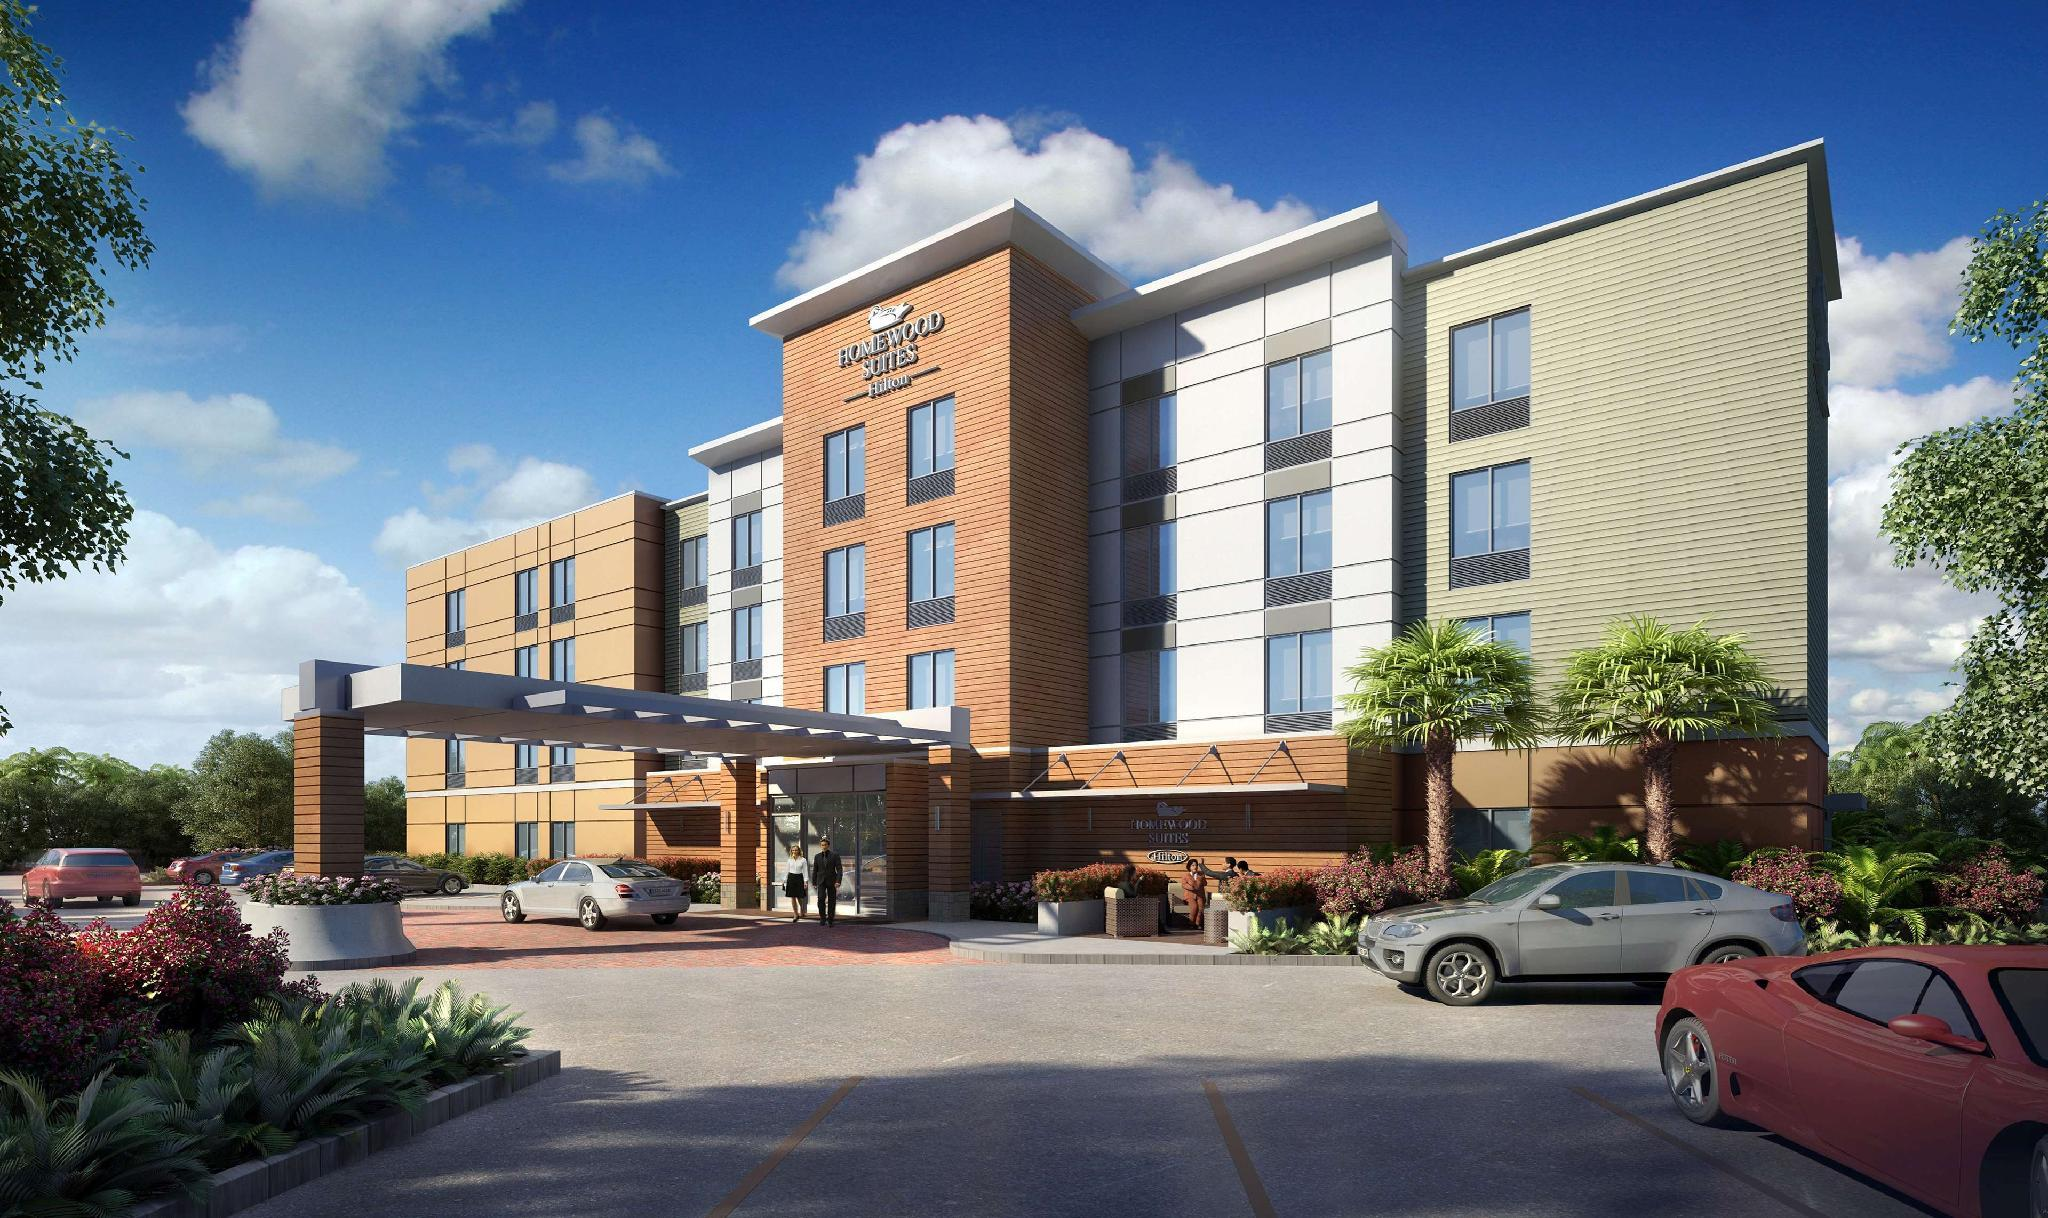 Homewood Suites By Hilton Houston NW At Beltway 8